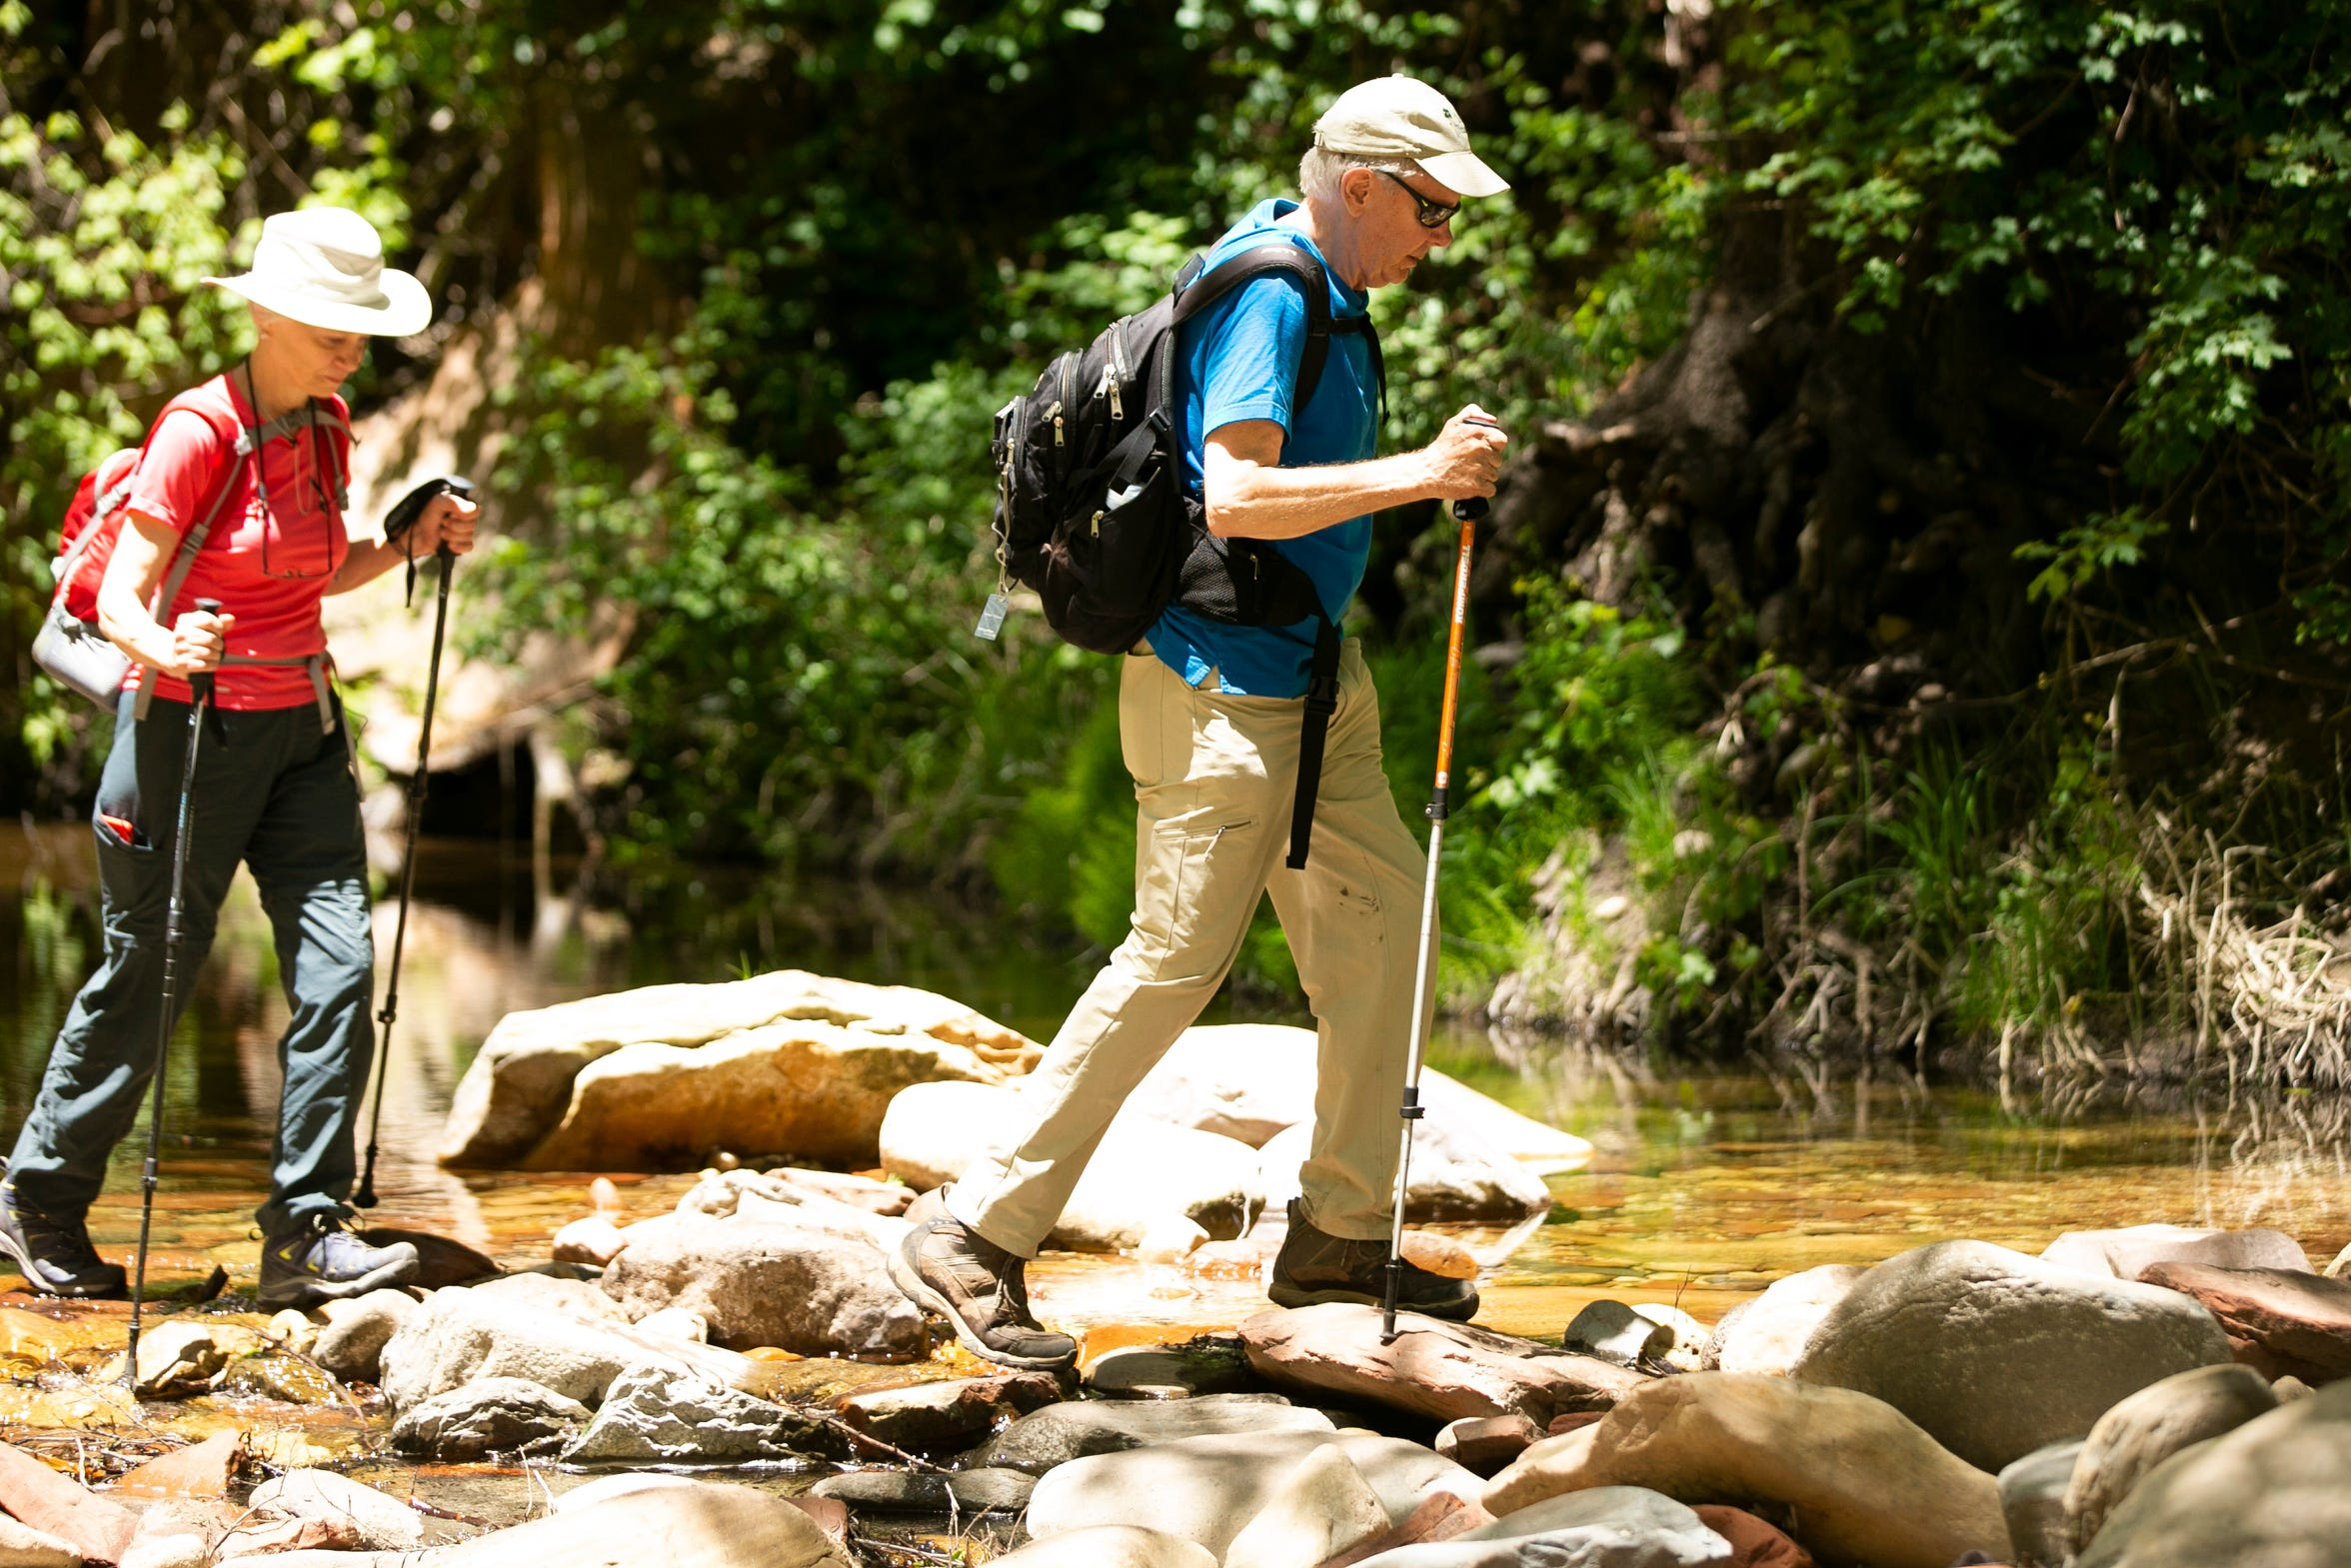 Former Arizona Gov. Bruce Babbitt and his wife, Hattie Babbitt, hike across the West Fork of Oak Creek near Sedona. Babbitt started coming to this wilderness area with his family when he was a boy.